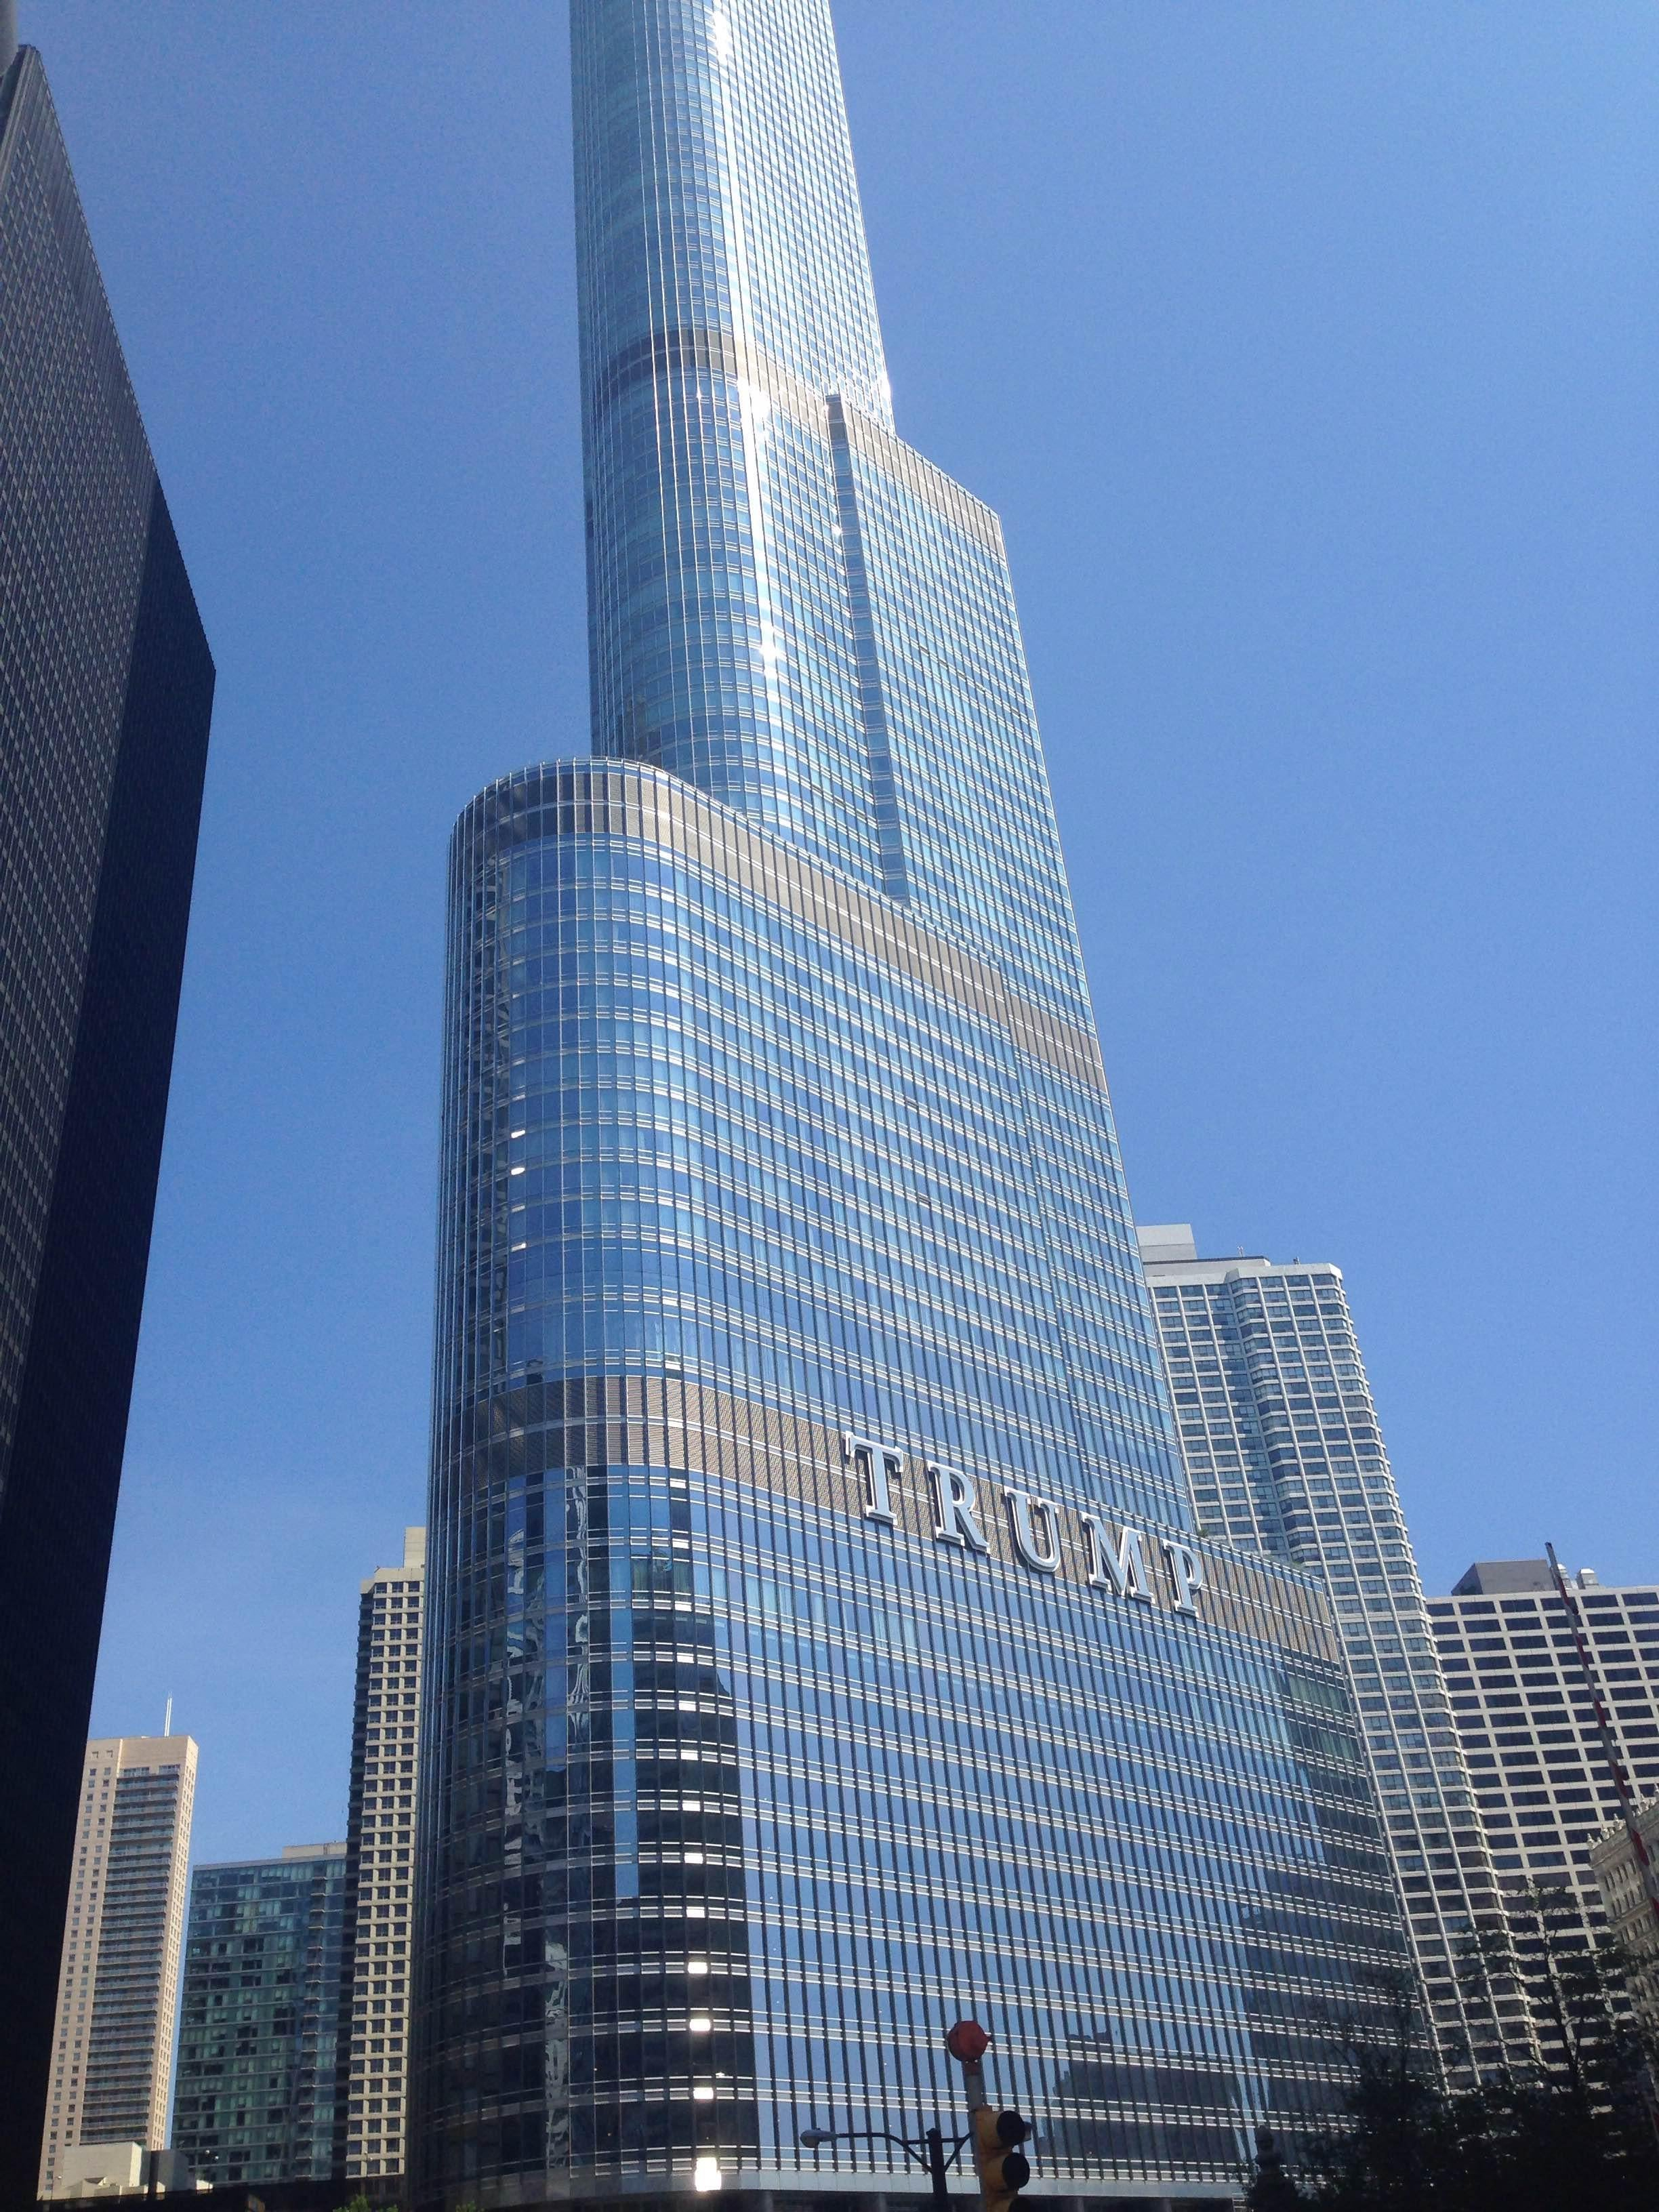 Ciudad en 77 West Wacker Drive